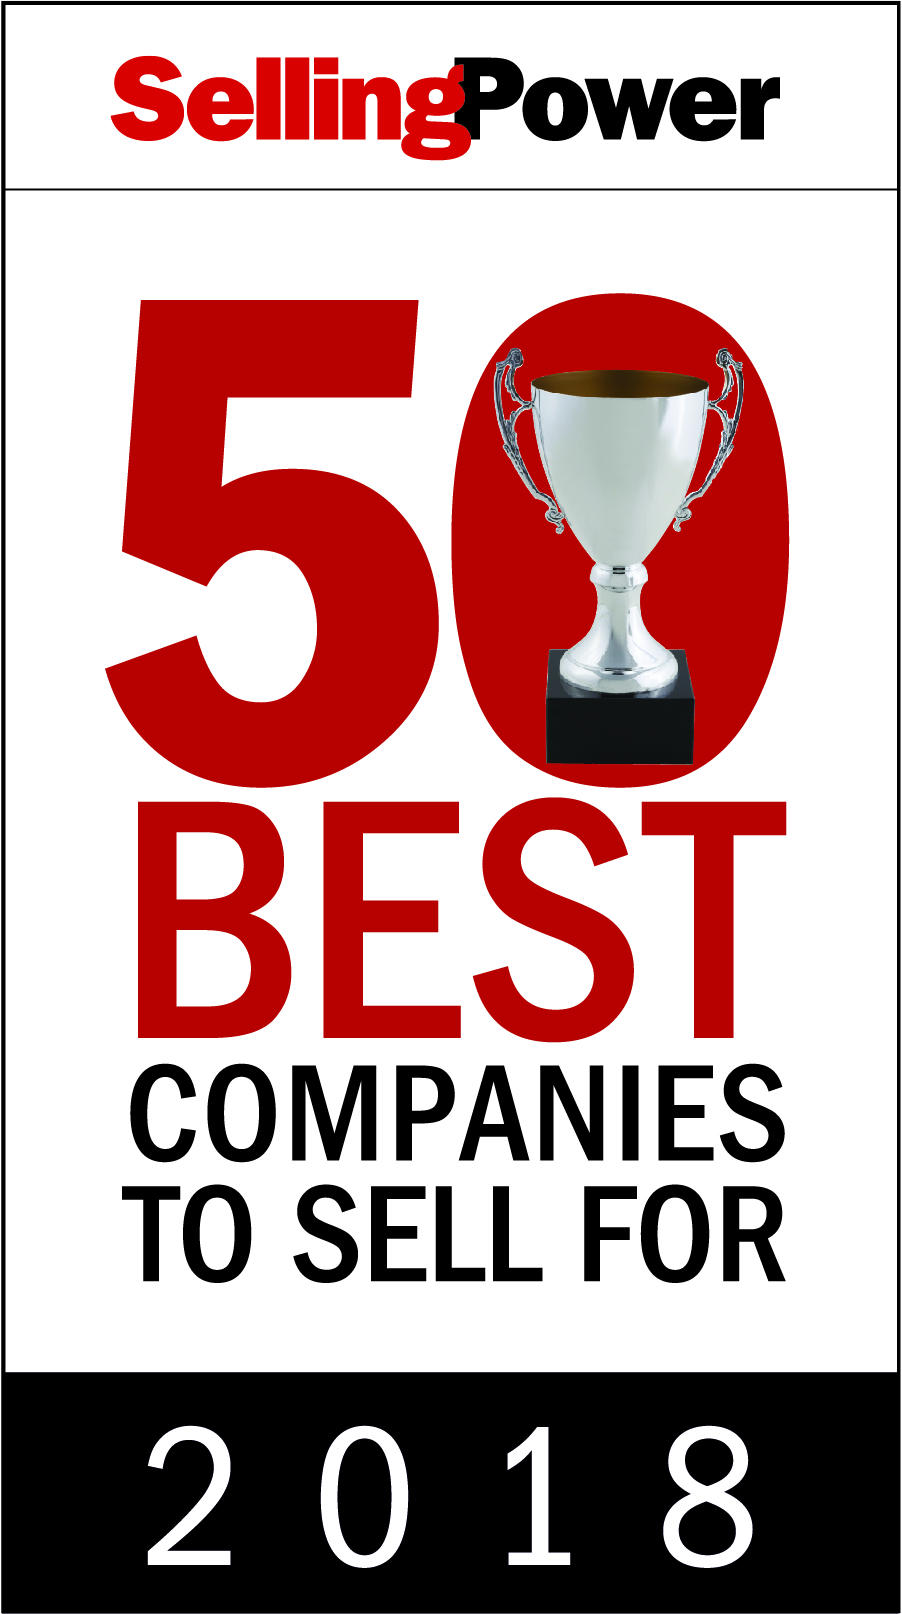 50 Best Companies to Sell for in 2018 - Selling Power